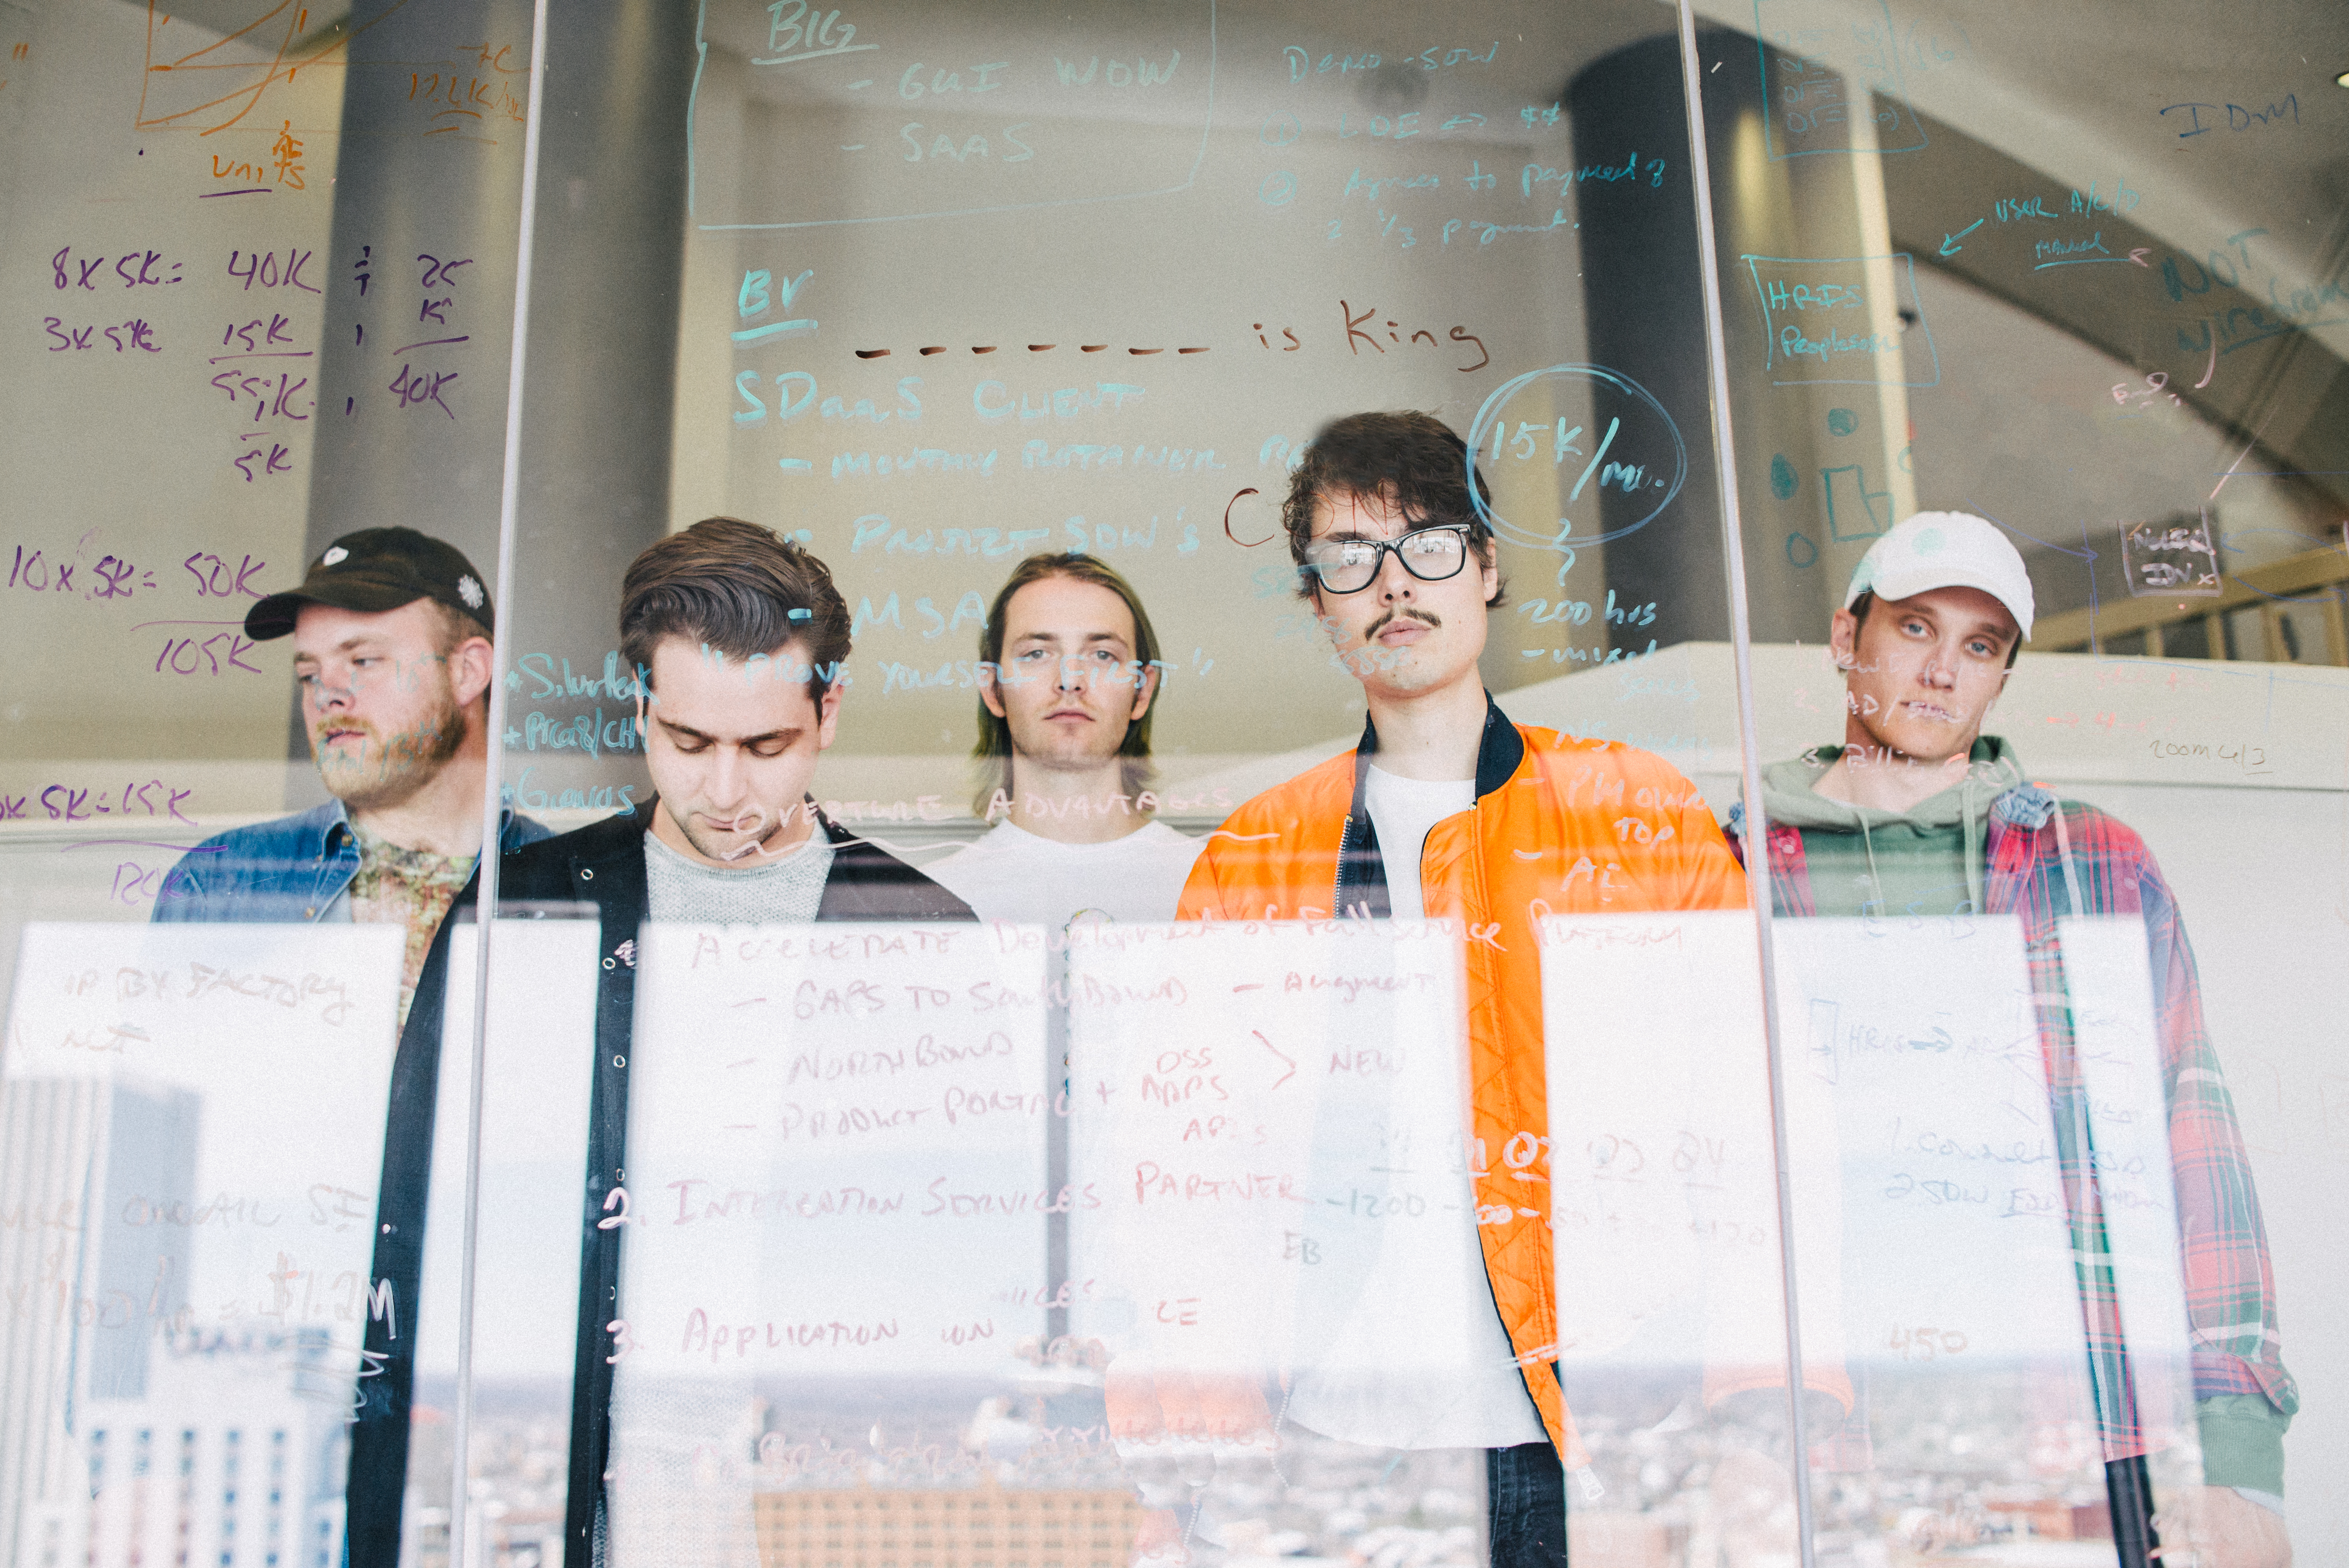 Joywave, photo credit: David O'Donohue